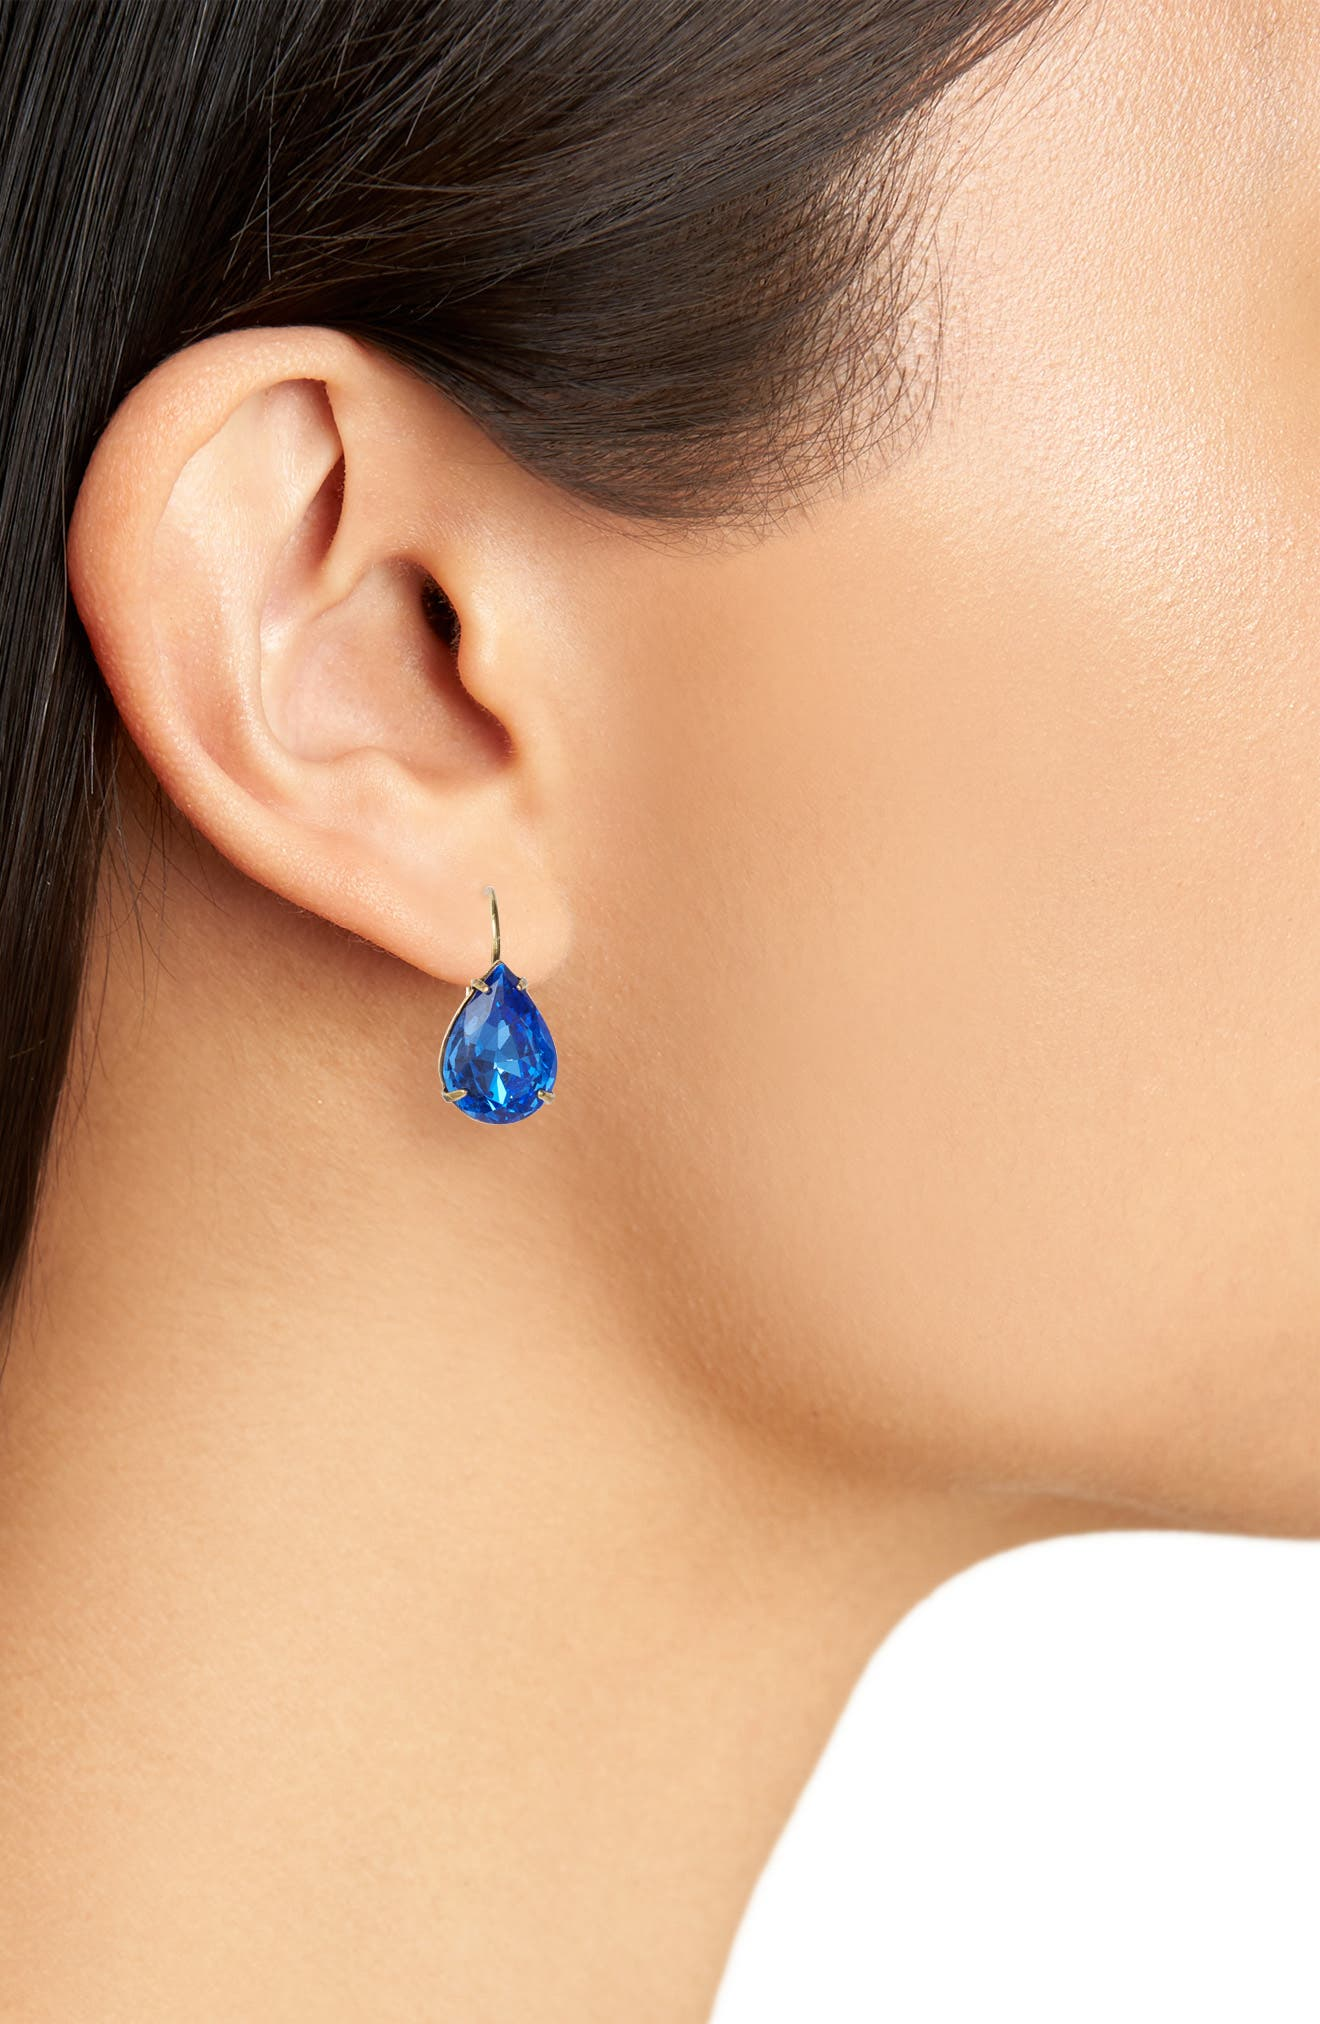 Dew Drop Crystal Earrings,                             Alternate thumbnail 2, color,                             BLUE